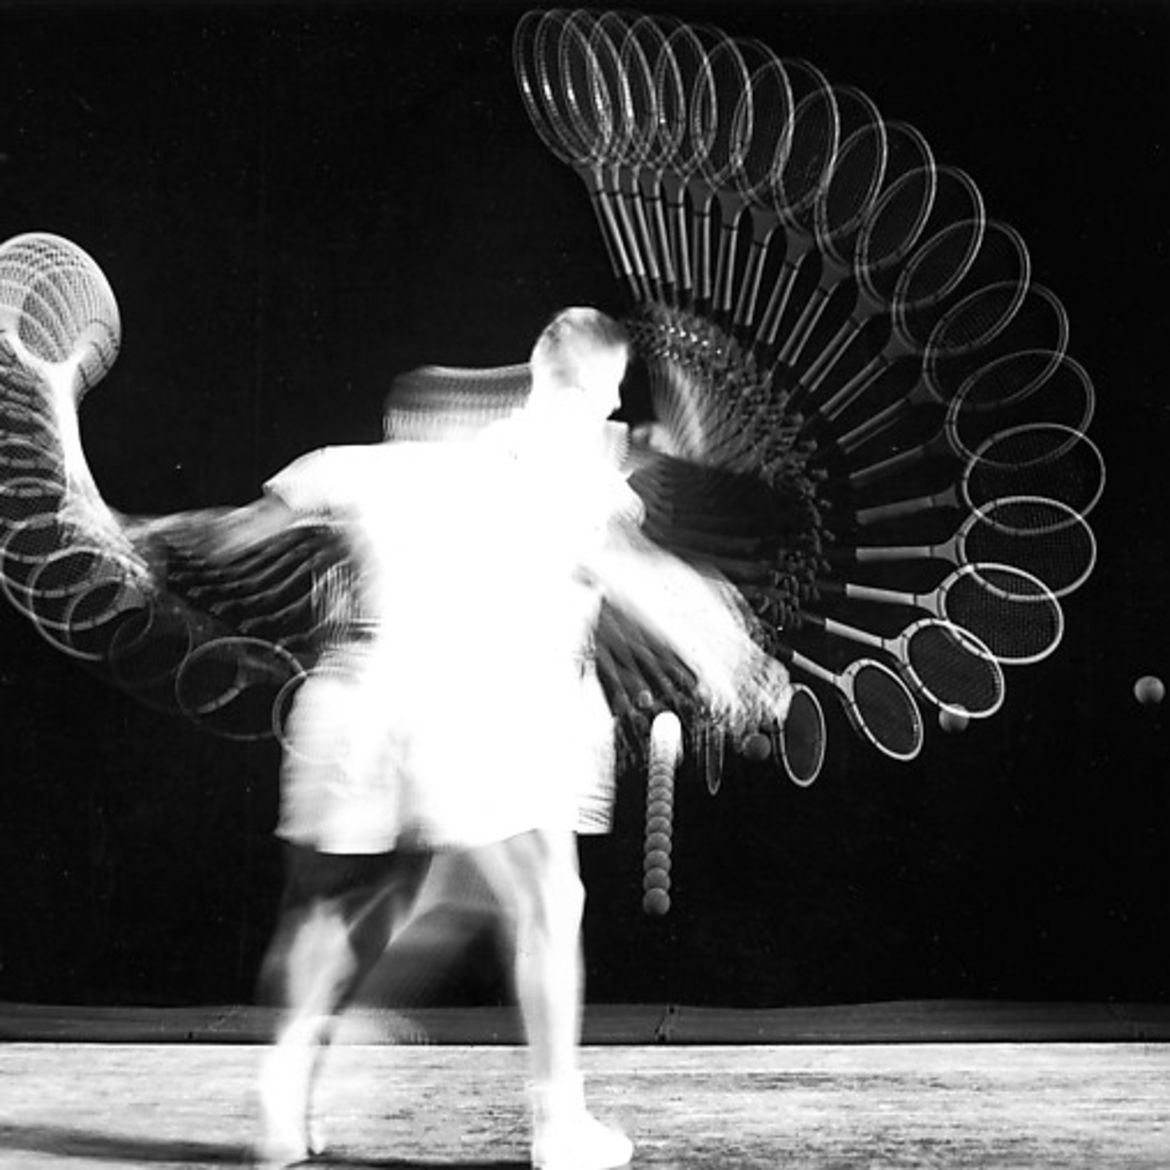 Cover Photo: photo by Harold Edgerton/The Metropolitan Museum of Art